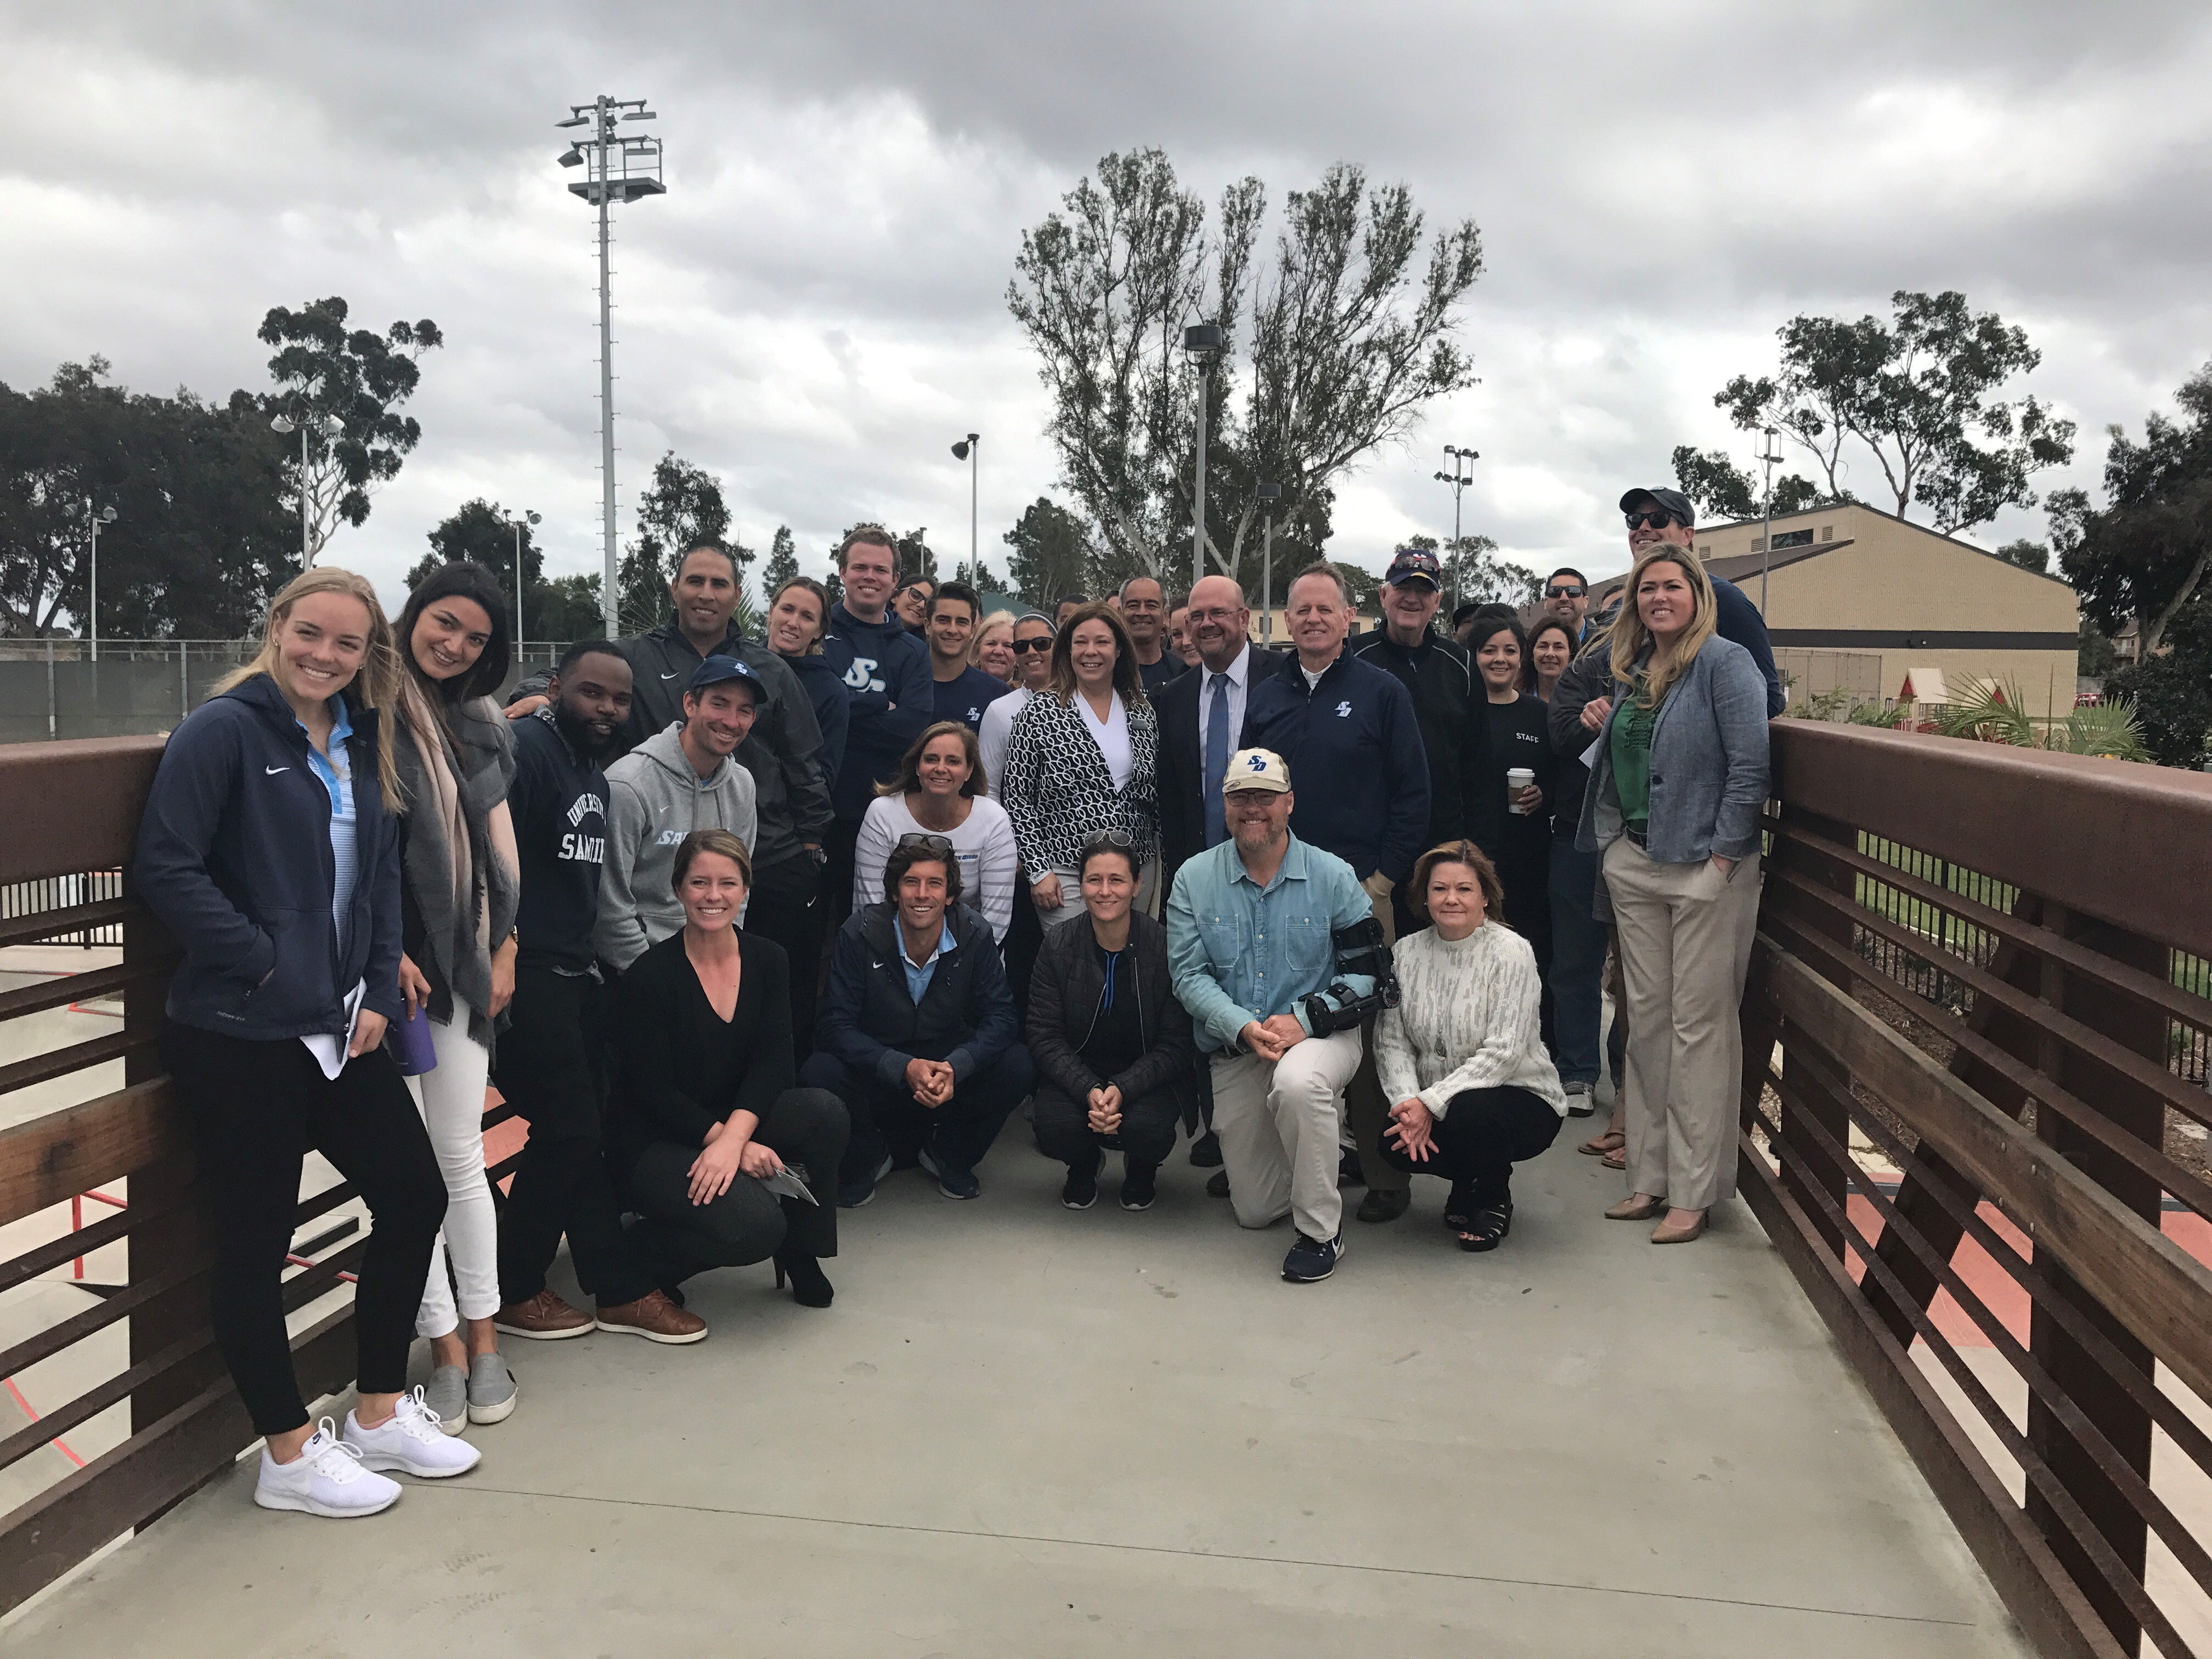 USD athletes on tour of Linda Vista Skate Park